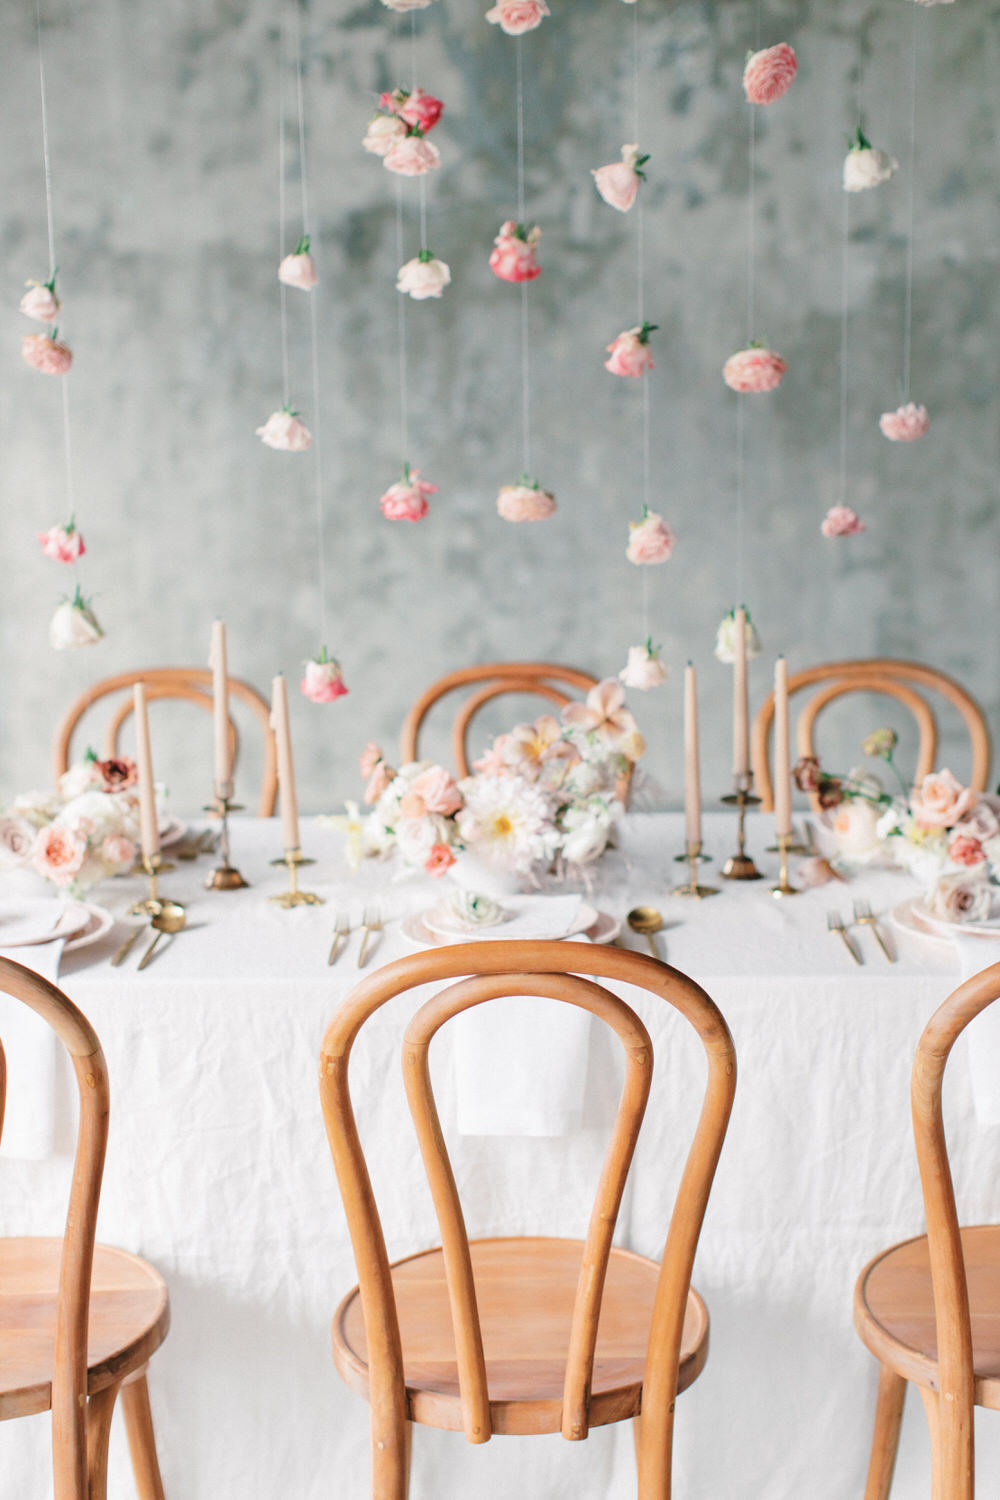 Ethereal Wedding Inspiration Dripping with...